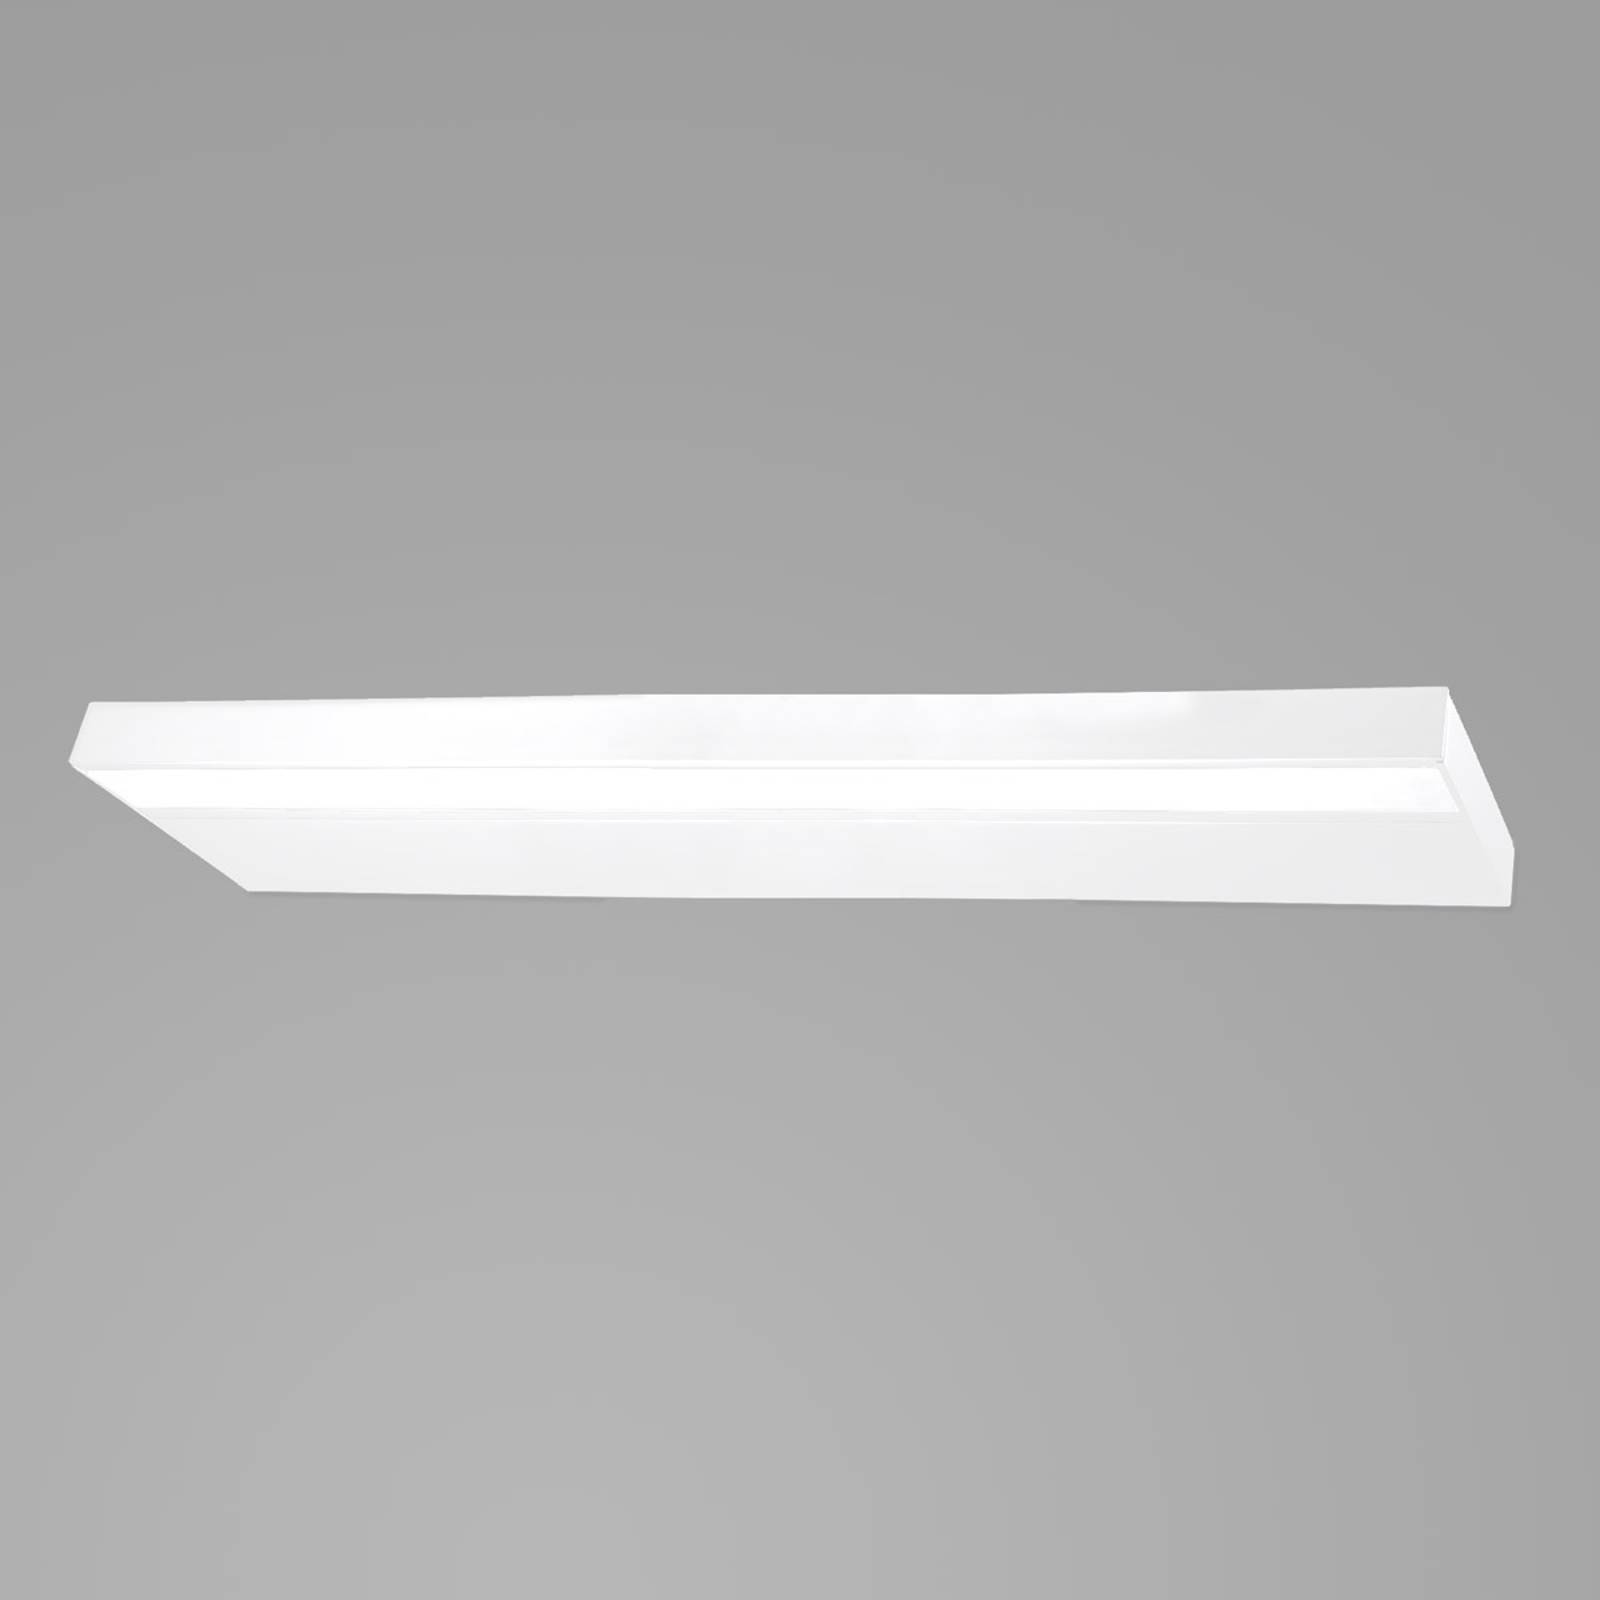 LED bathroom wall light Prim, IP20, 120 cm, white from Pujol